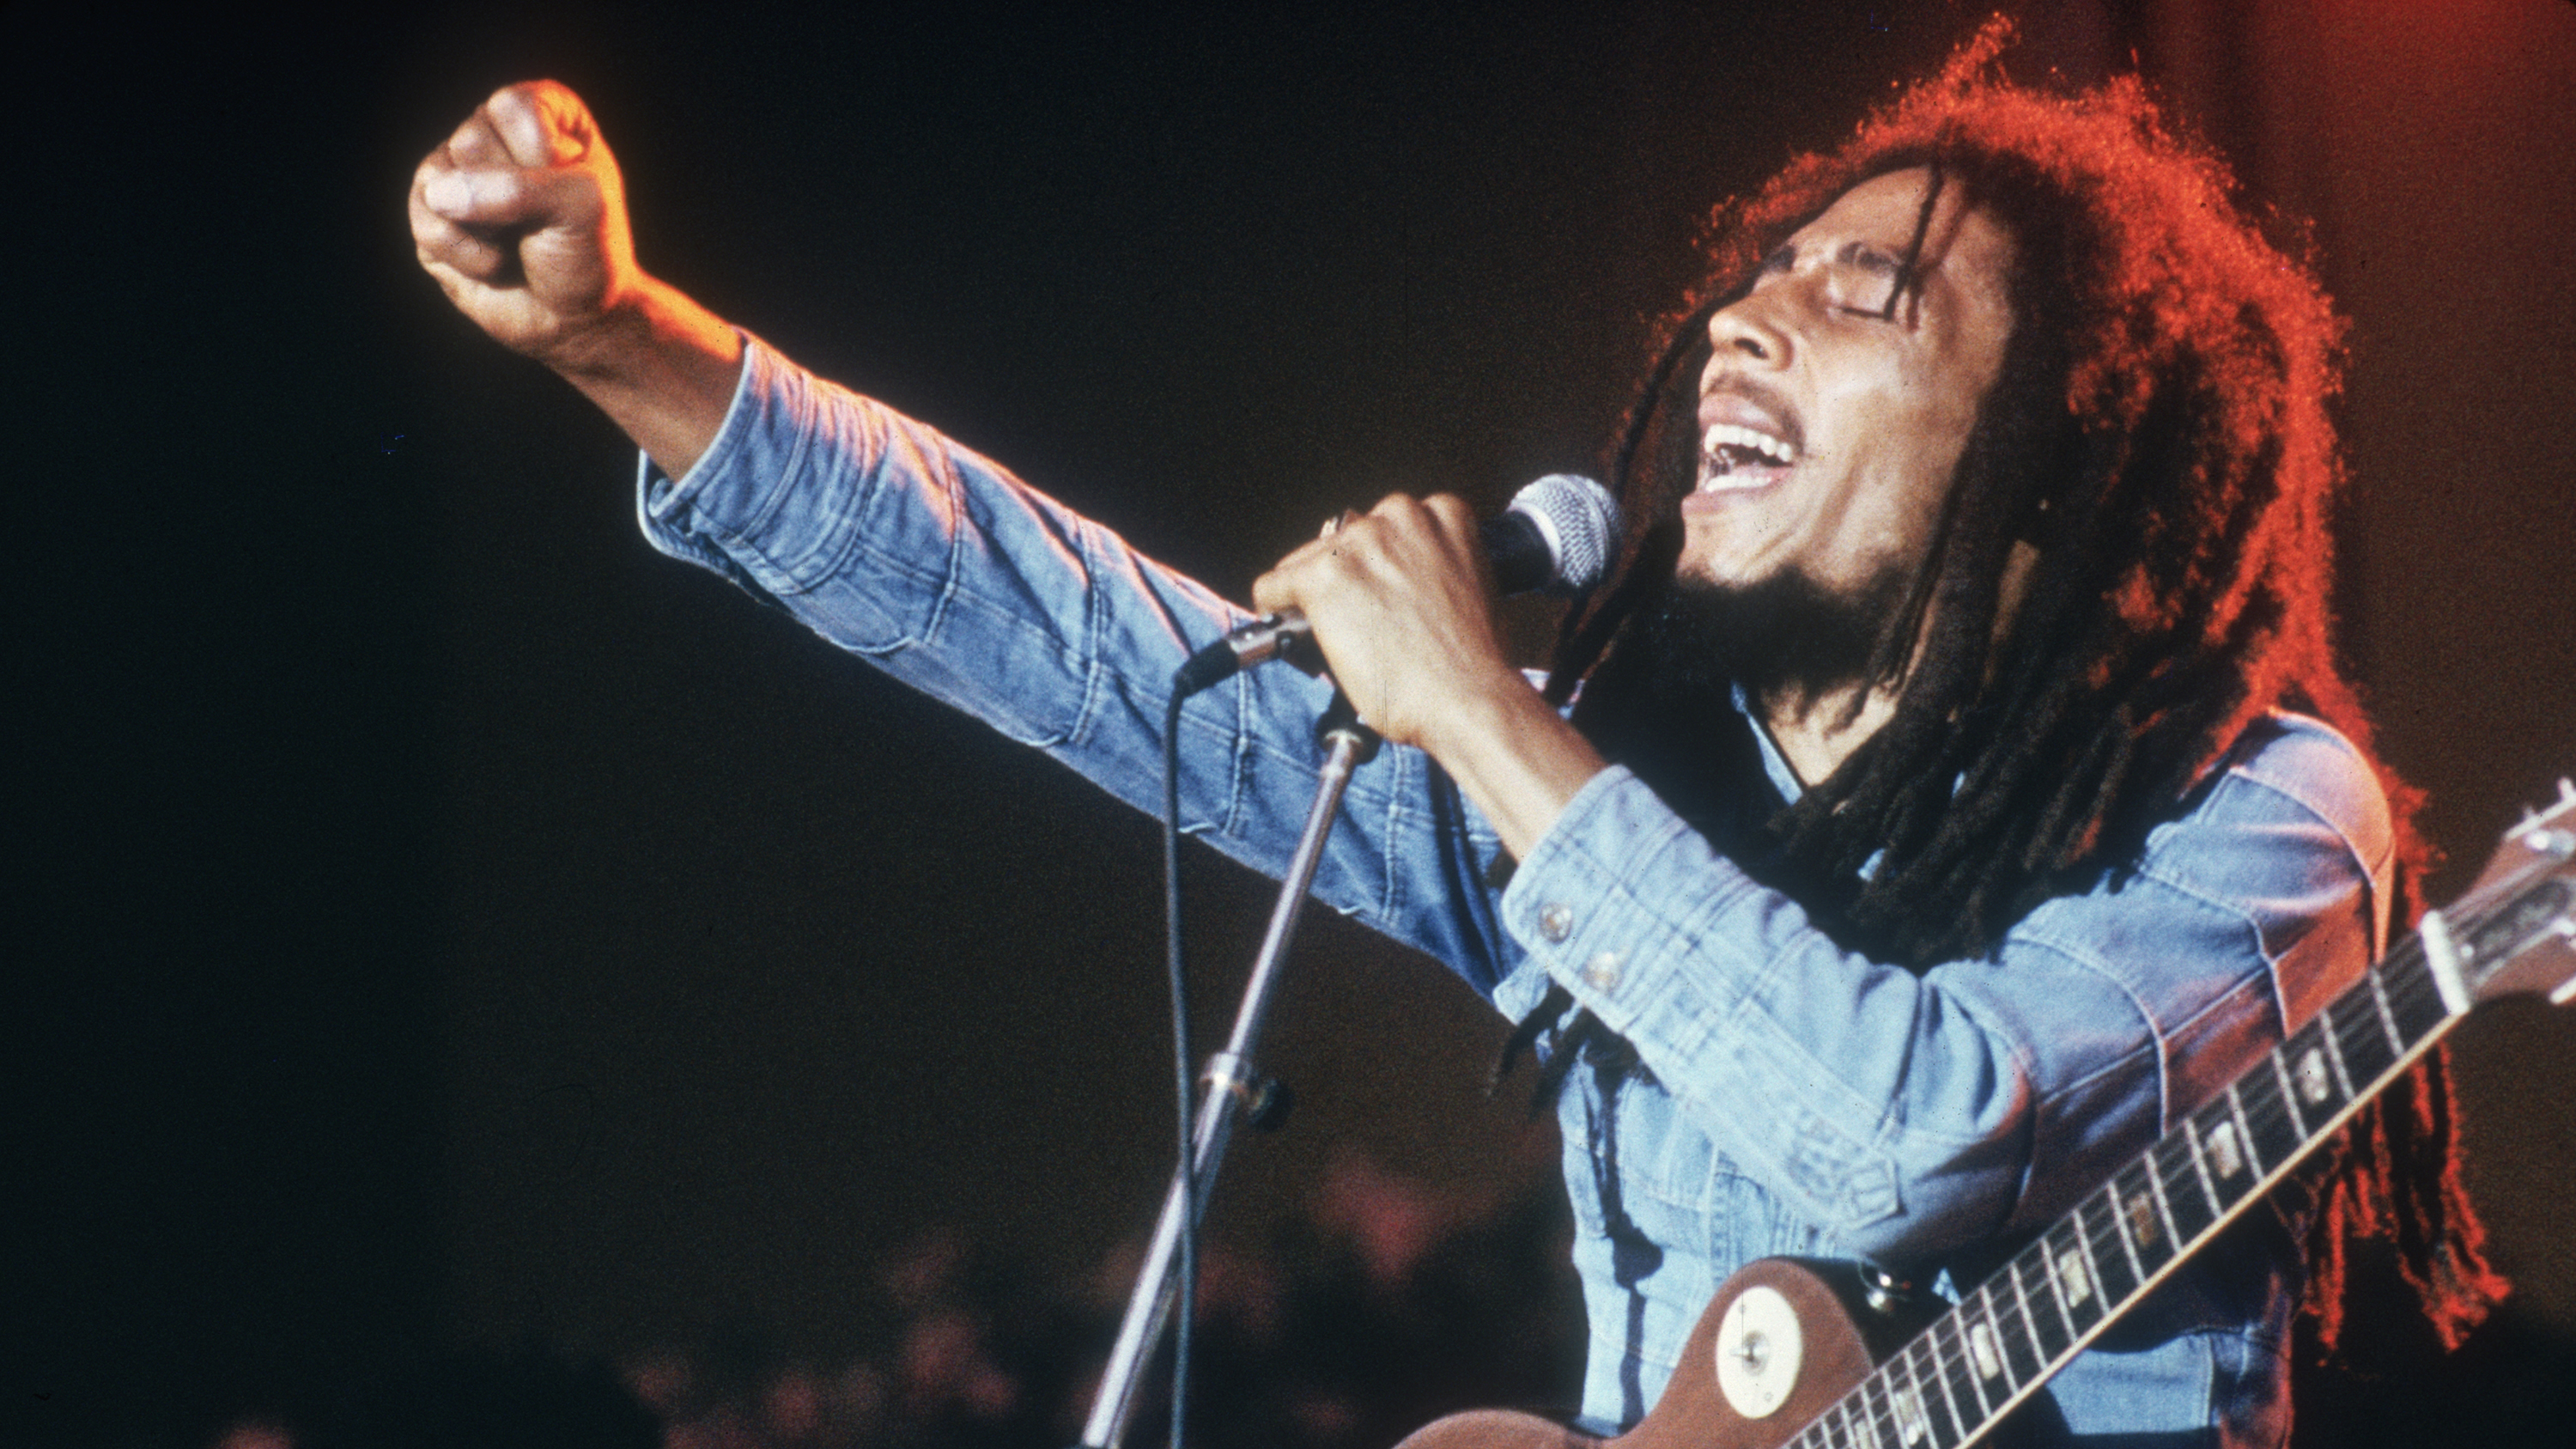 Bob Marley's 'One Love' reimagined in support of UNICEF's Covid-19 efforts